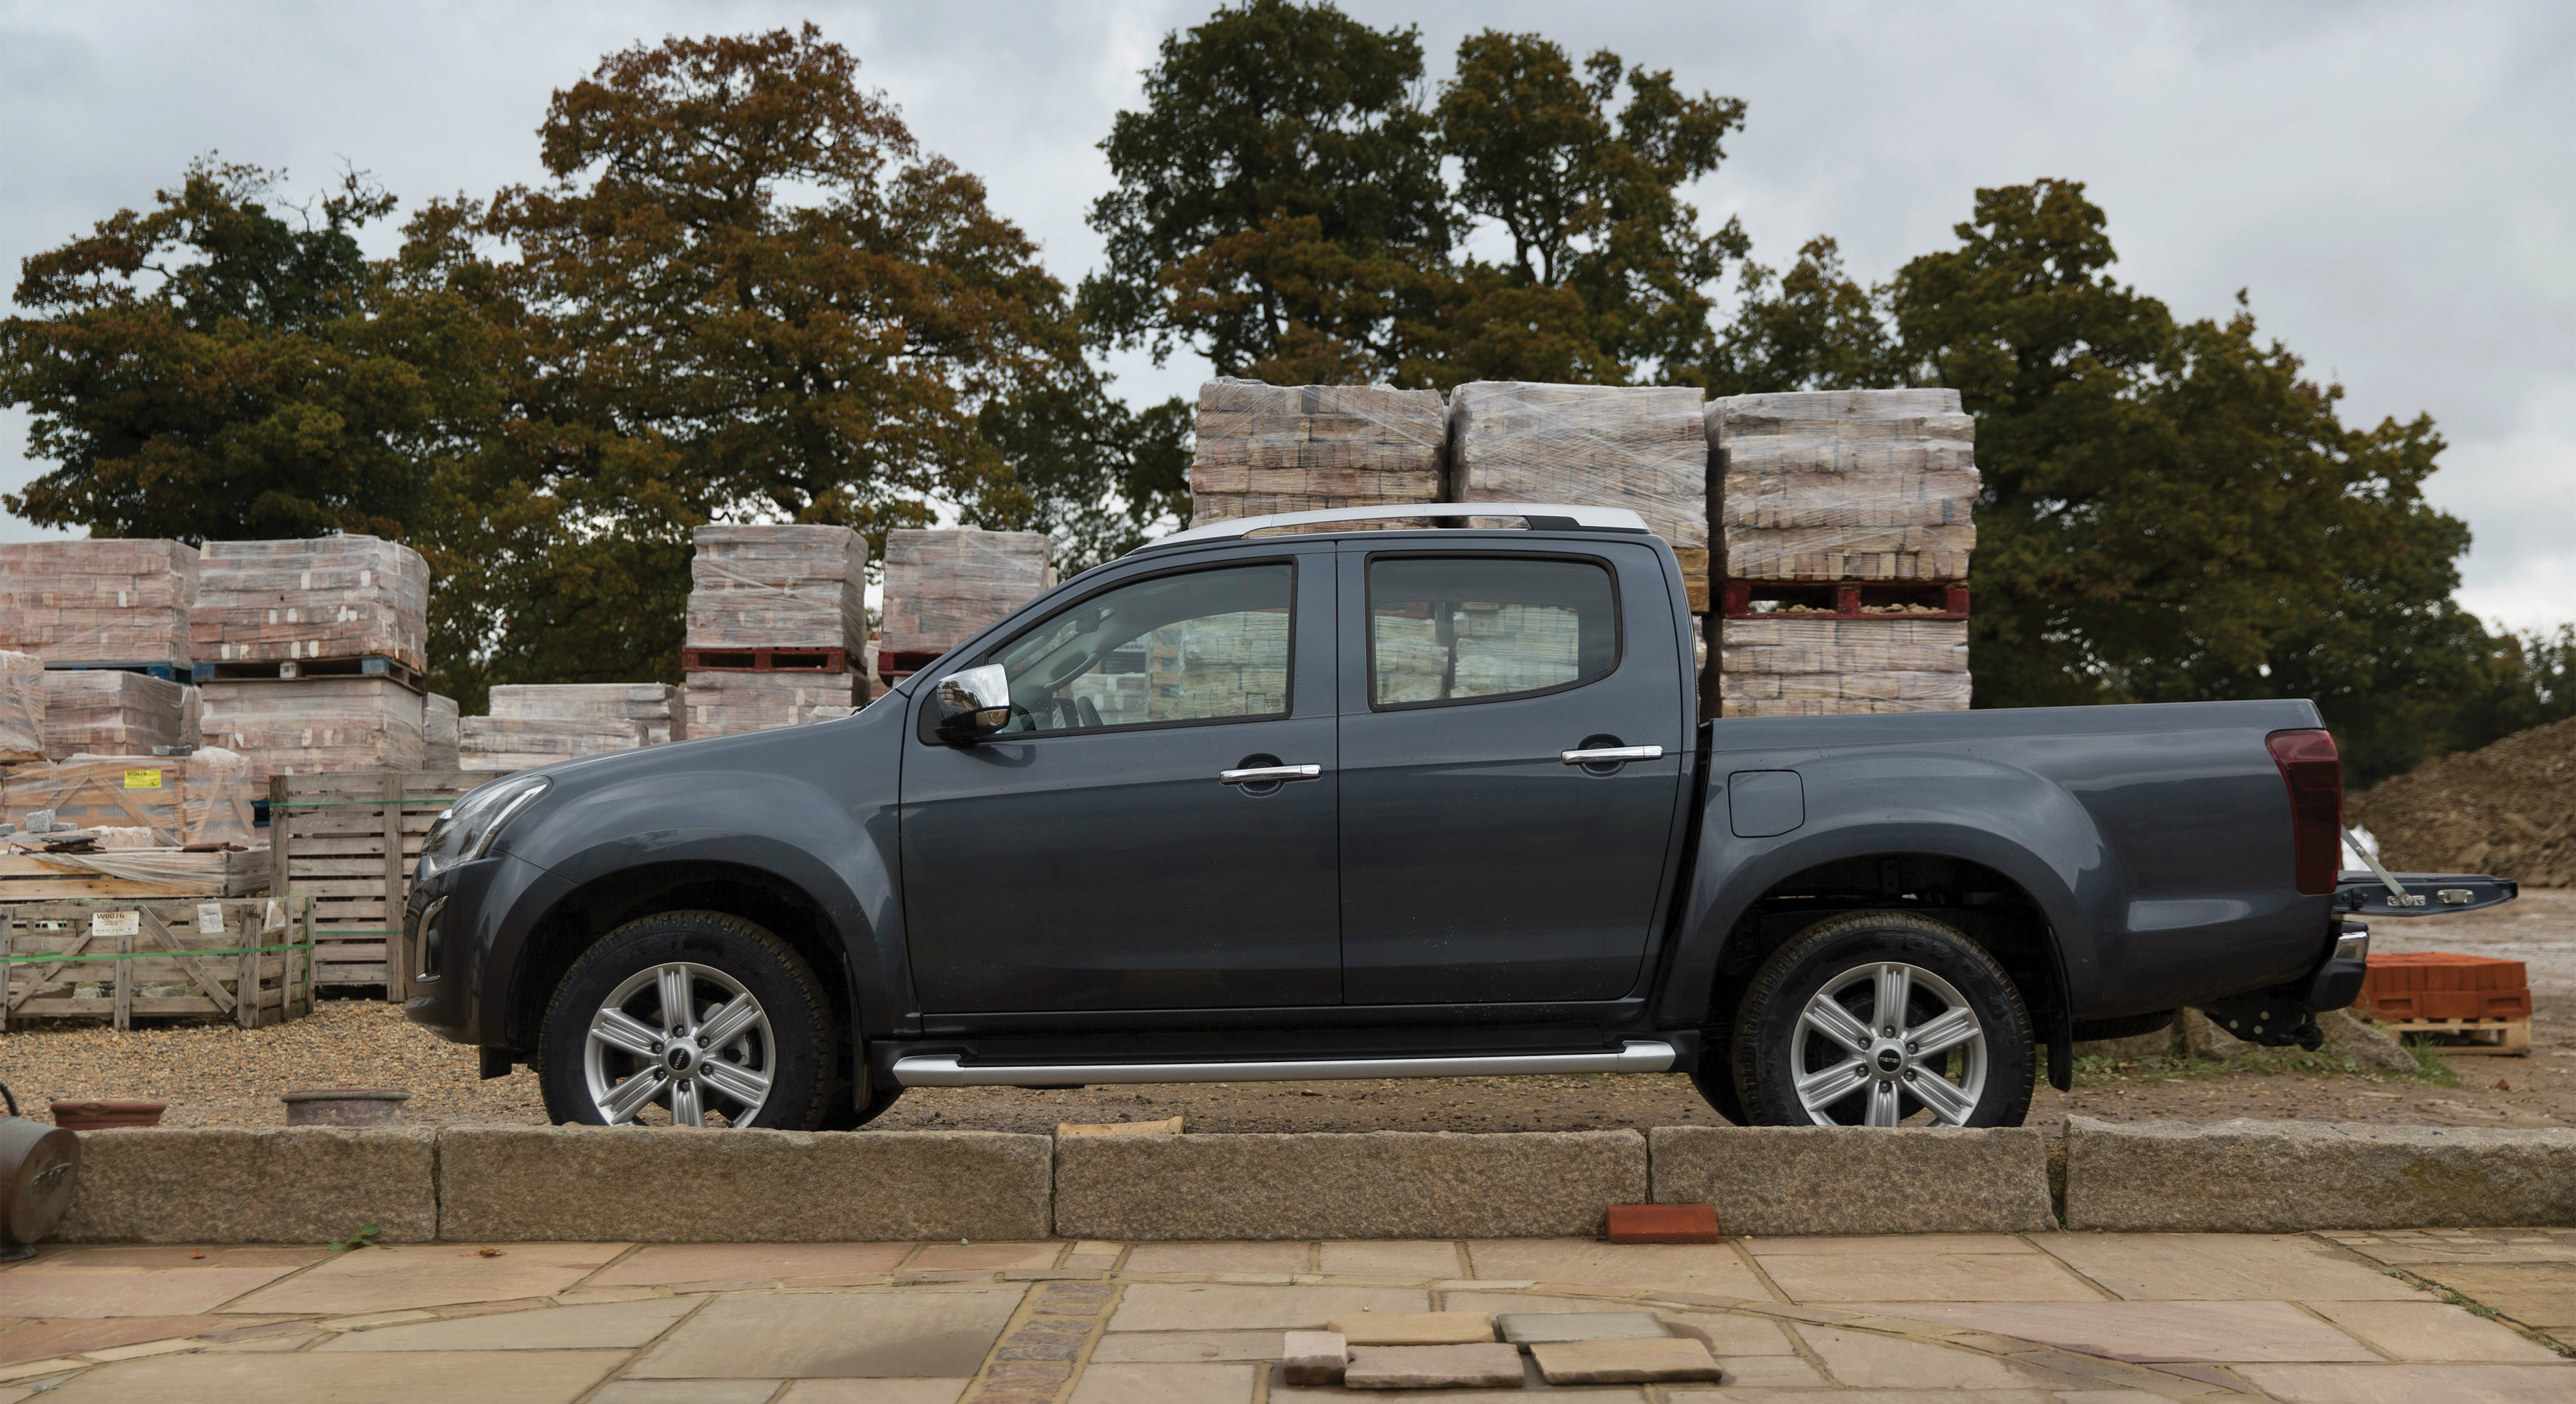 2017 Isuzu D-Max Price Announced For The UK: GBP 15,749 - autoevolution